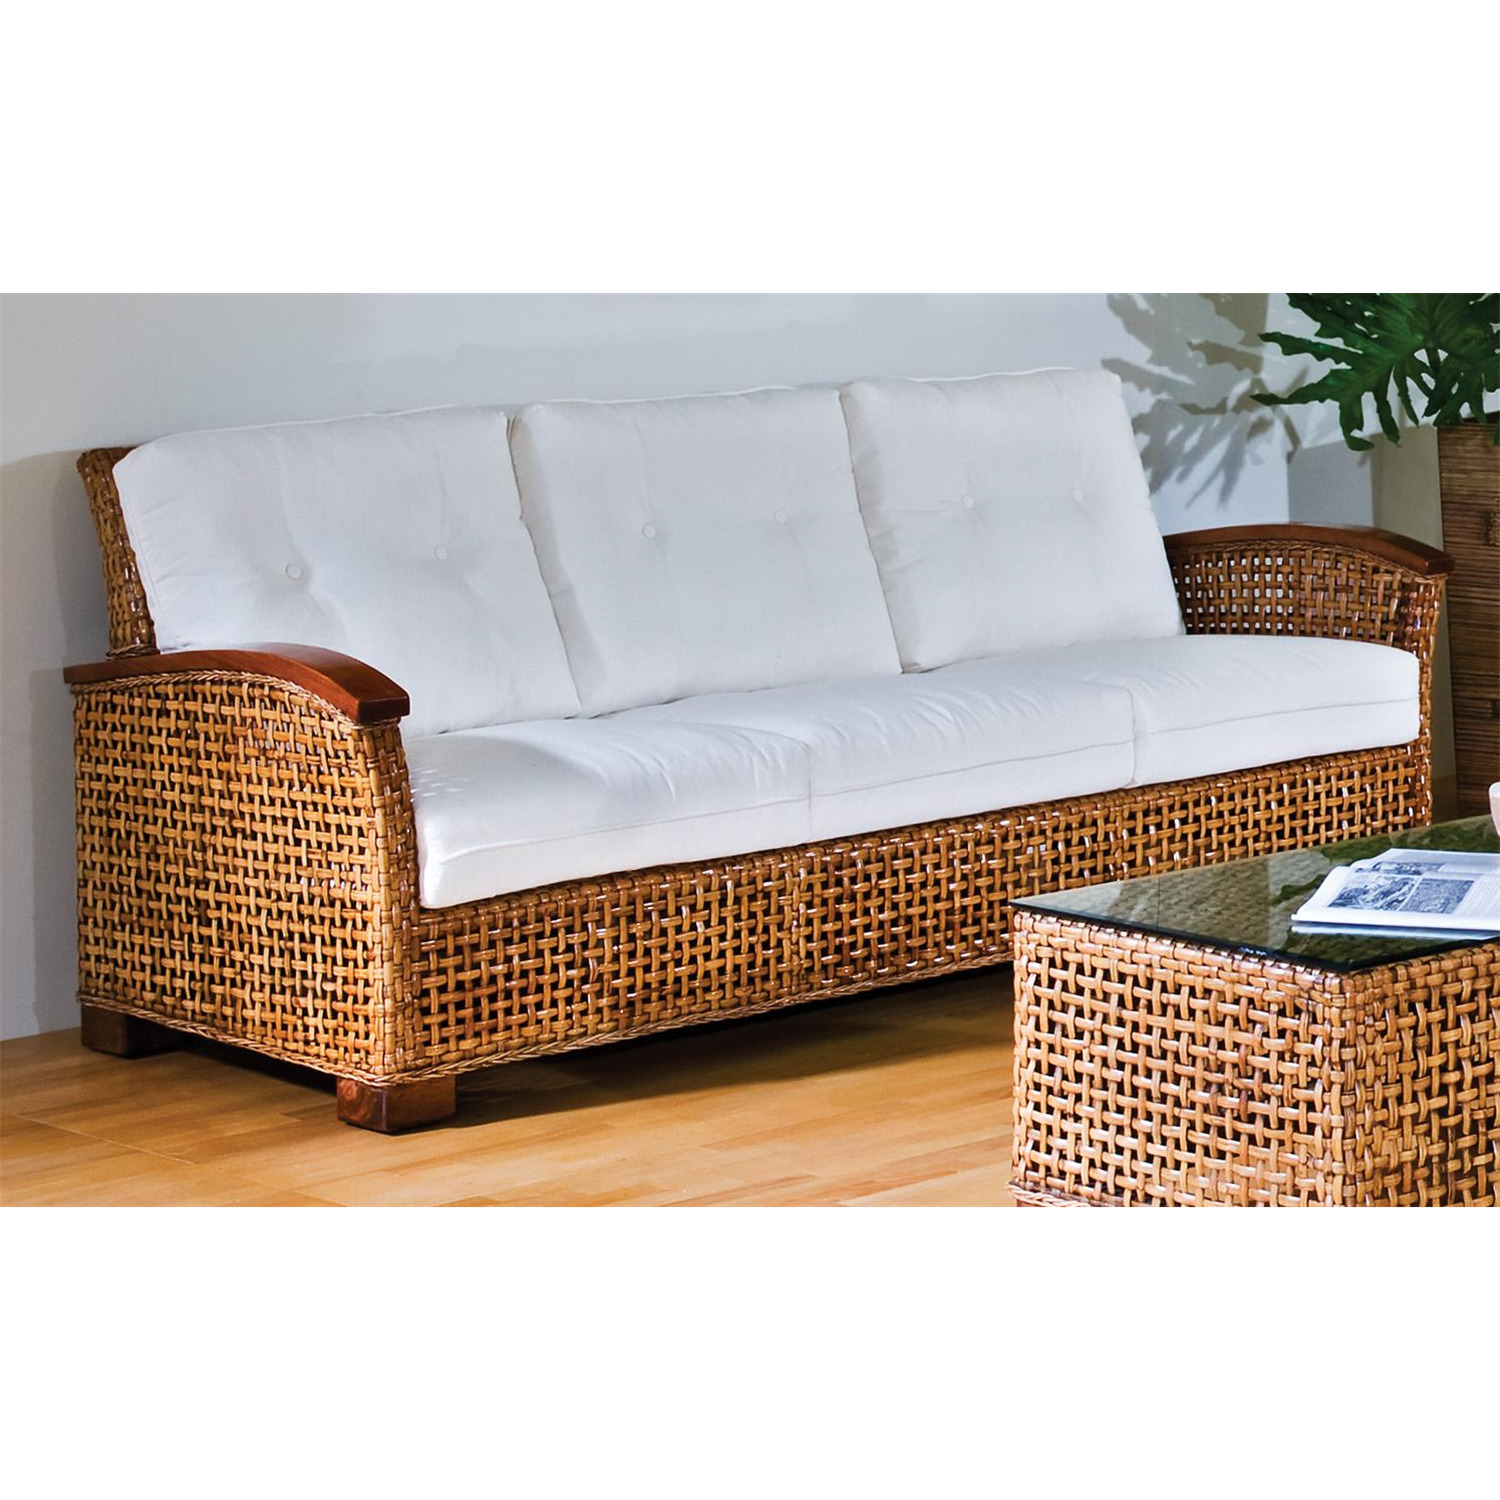 Wicker Sofas Indoor Awesome Wicker Furniture Indoor Images